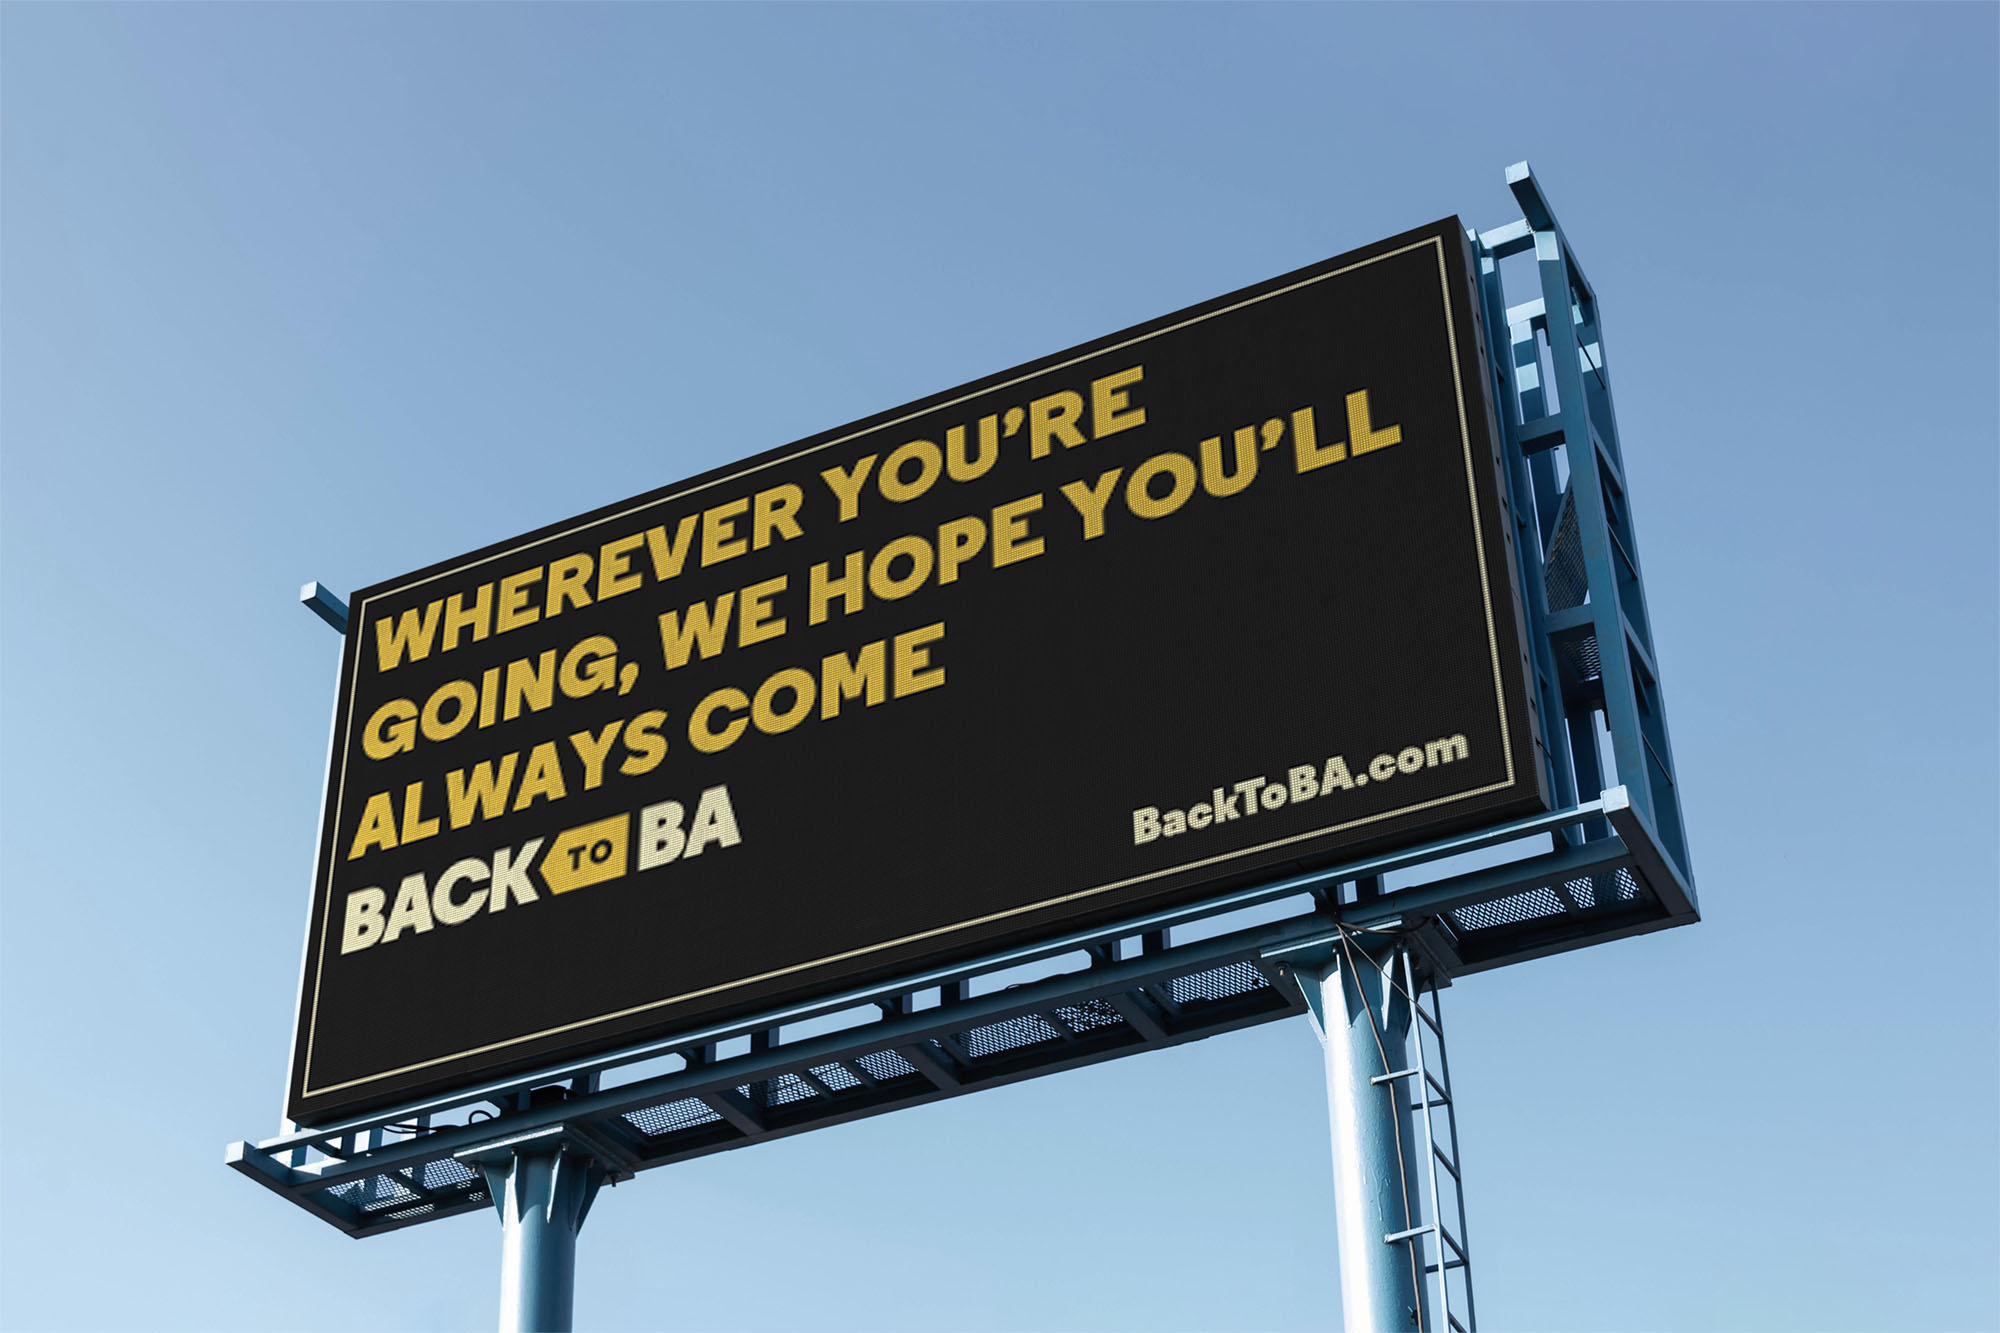 A billboard for Back to BA